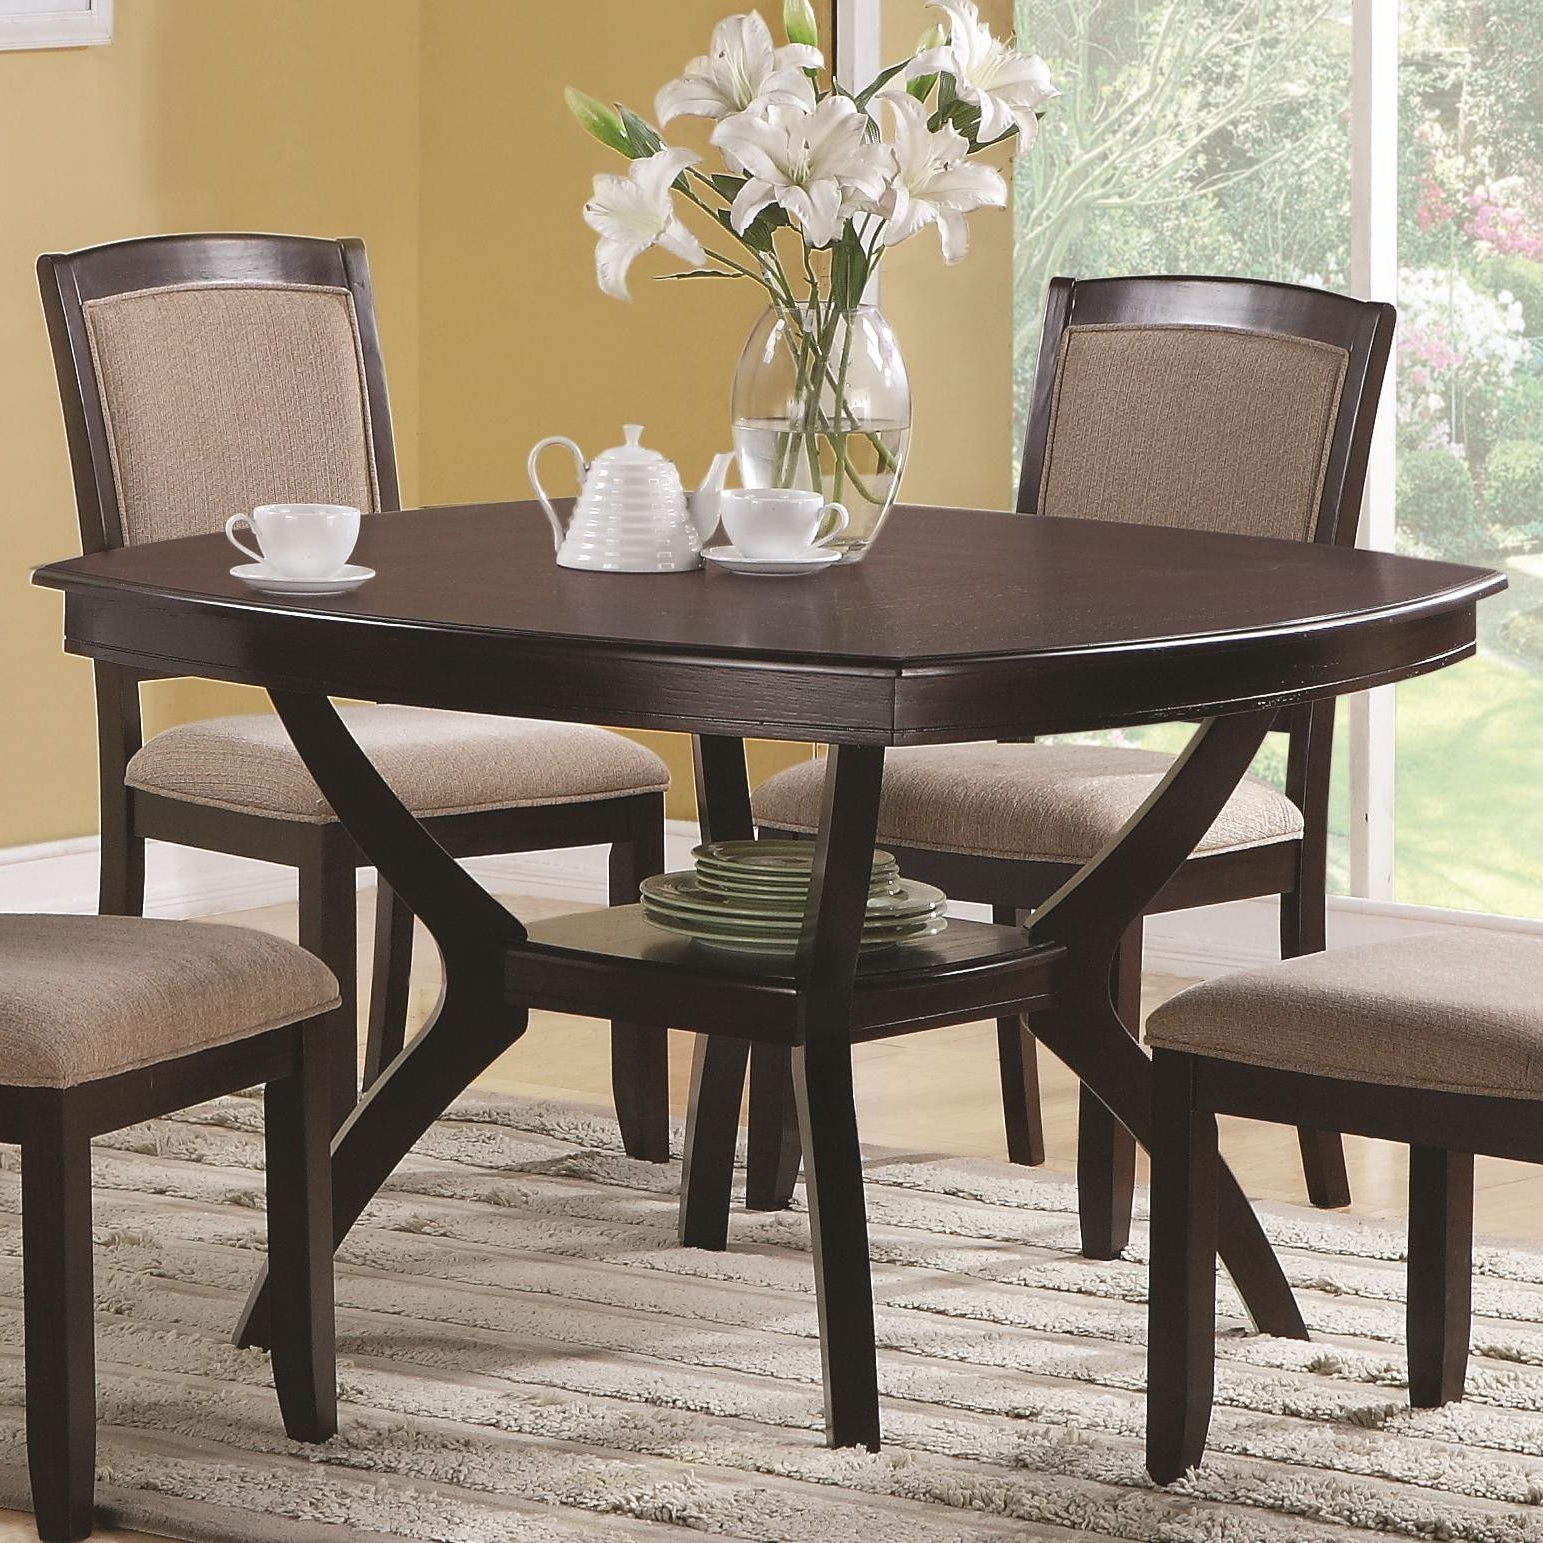 Casual Rounded Edge Square Dining Table Cappuccino Coaster Regarding Well Known Atwood Transitional Square Dining Tables (View 14 of 25)